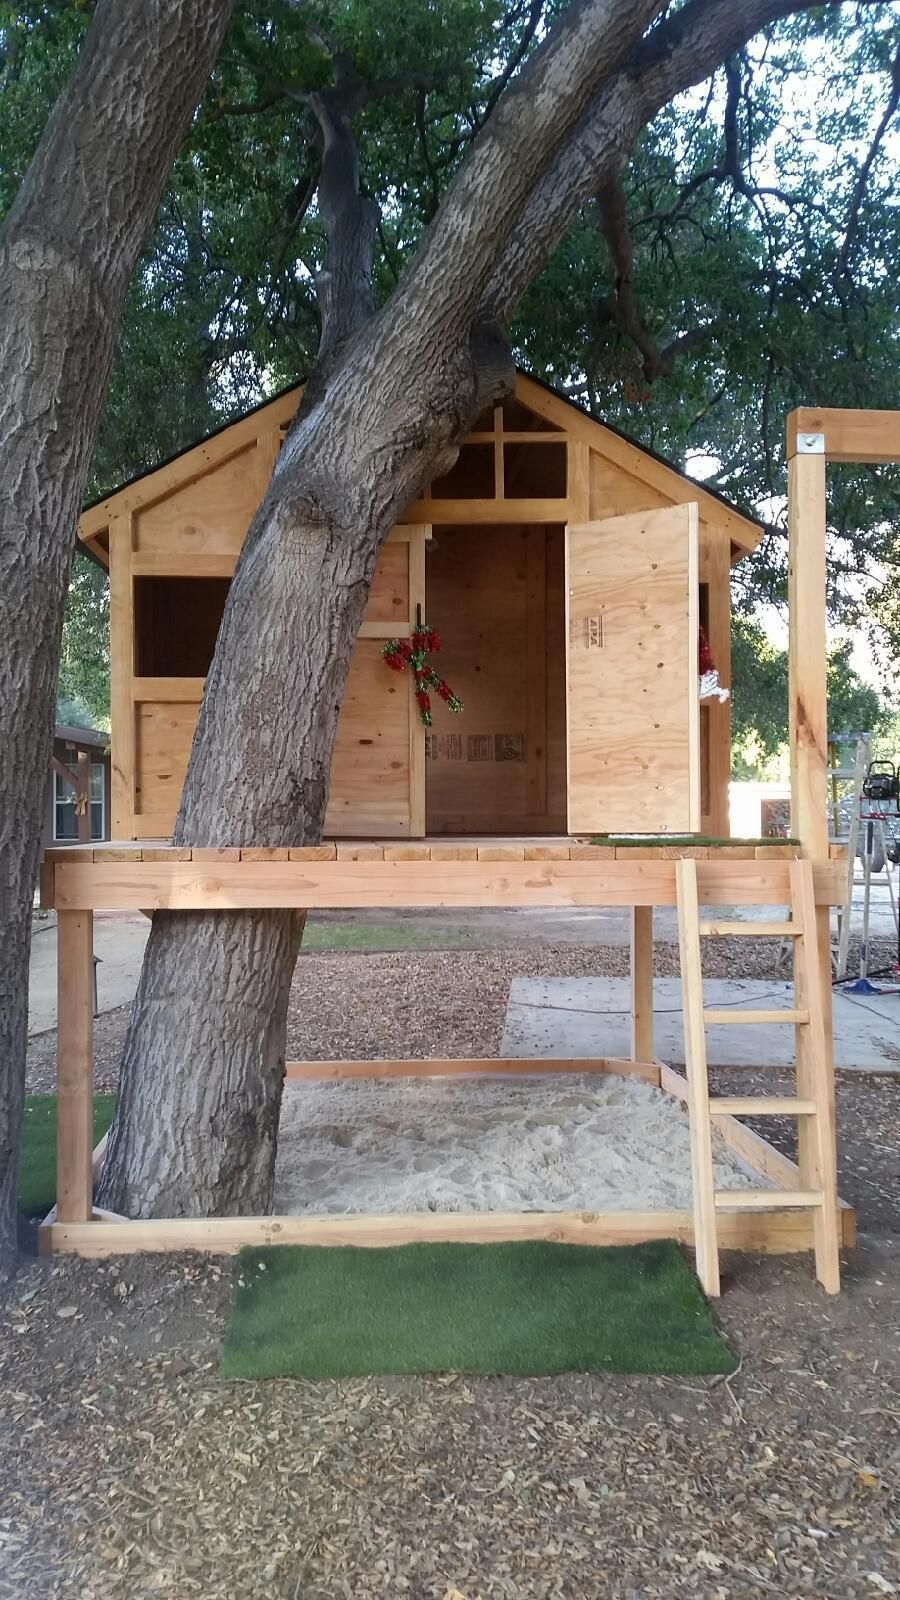 More Ideas Below Amazing Tiny Treehouse Kids Architecture Modern Luxury Treehouse Interior Cozy Backyard Sma Tree House Diy Tree House Kids Tree House Designs Small treehouse for backyard